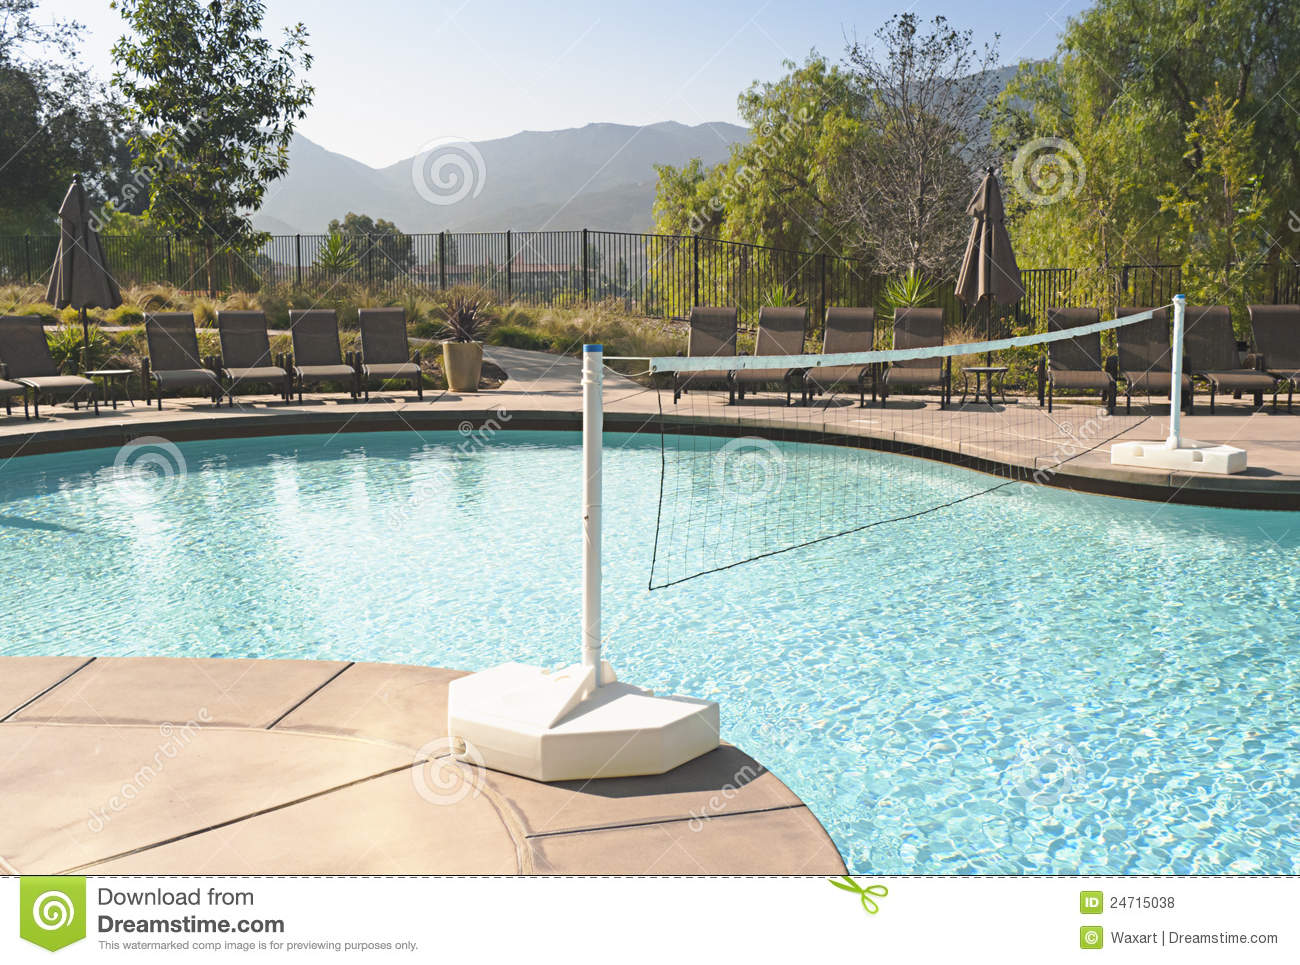 Swimming Pool With Volleyball Net Royalty Free Stock Photos Image 24715038